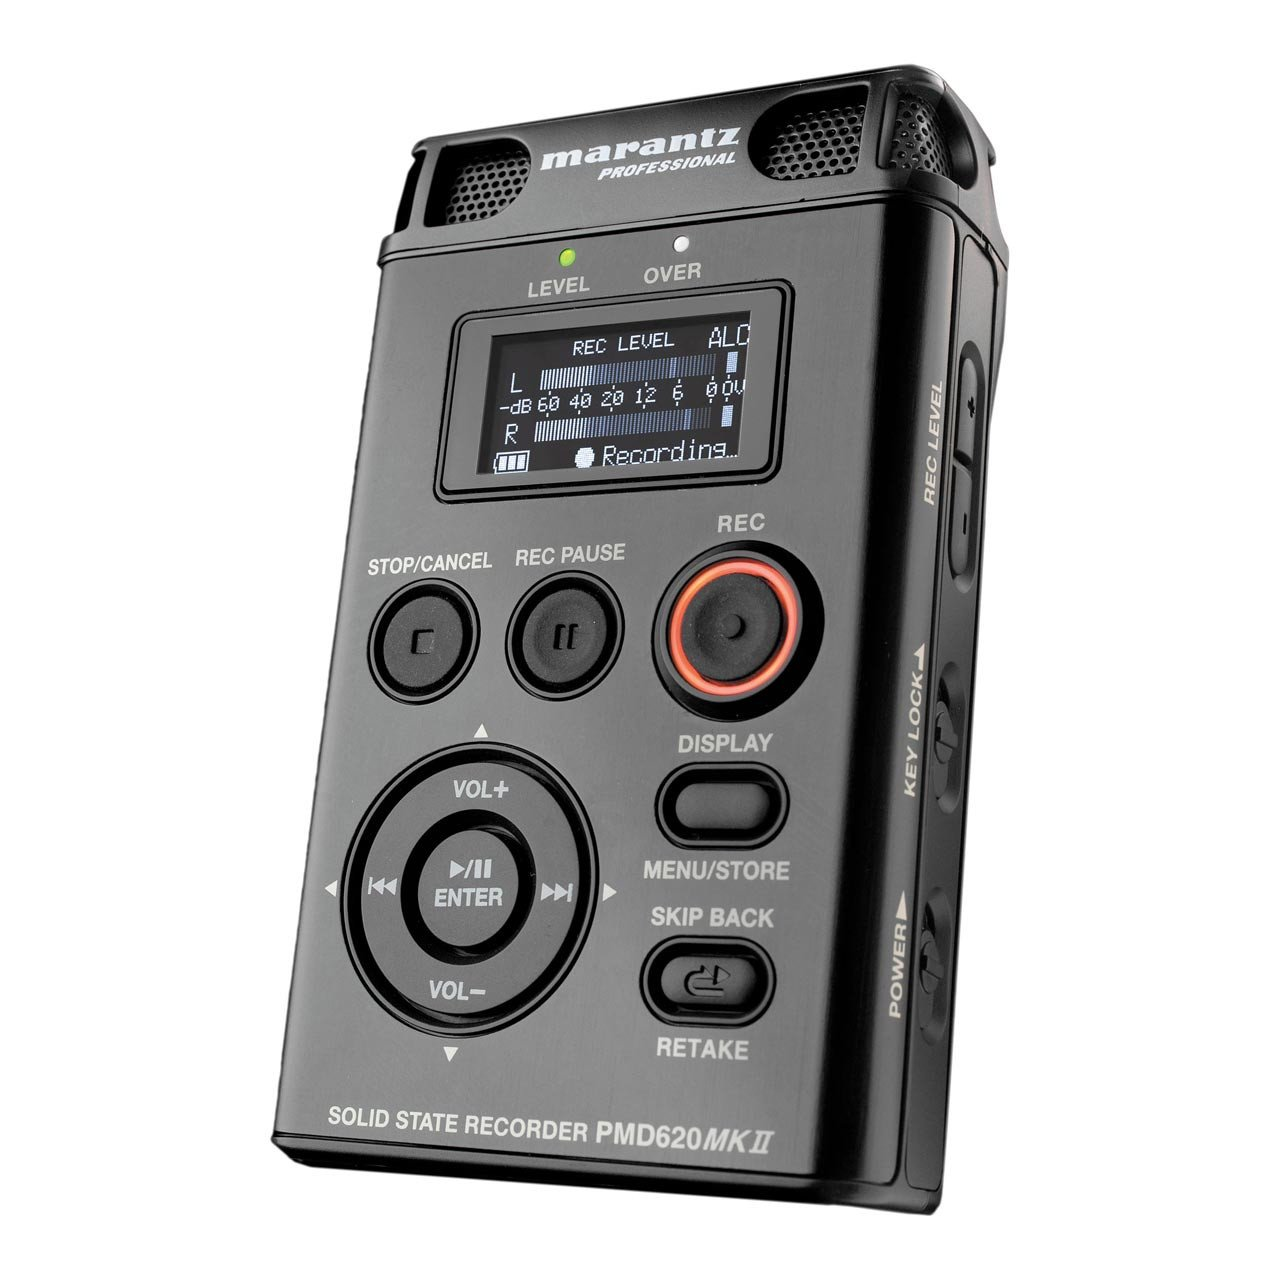 Portable Recorder - Marantz PMD620MKII Handheld Solid State Recorder